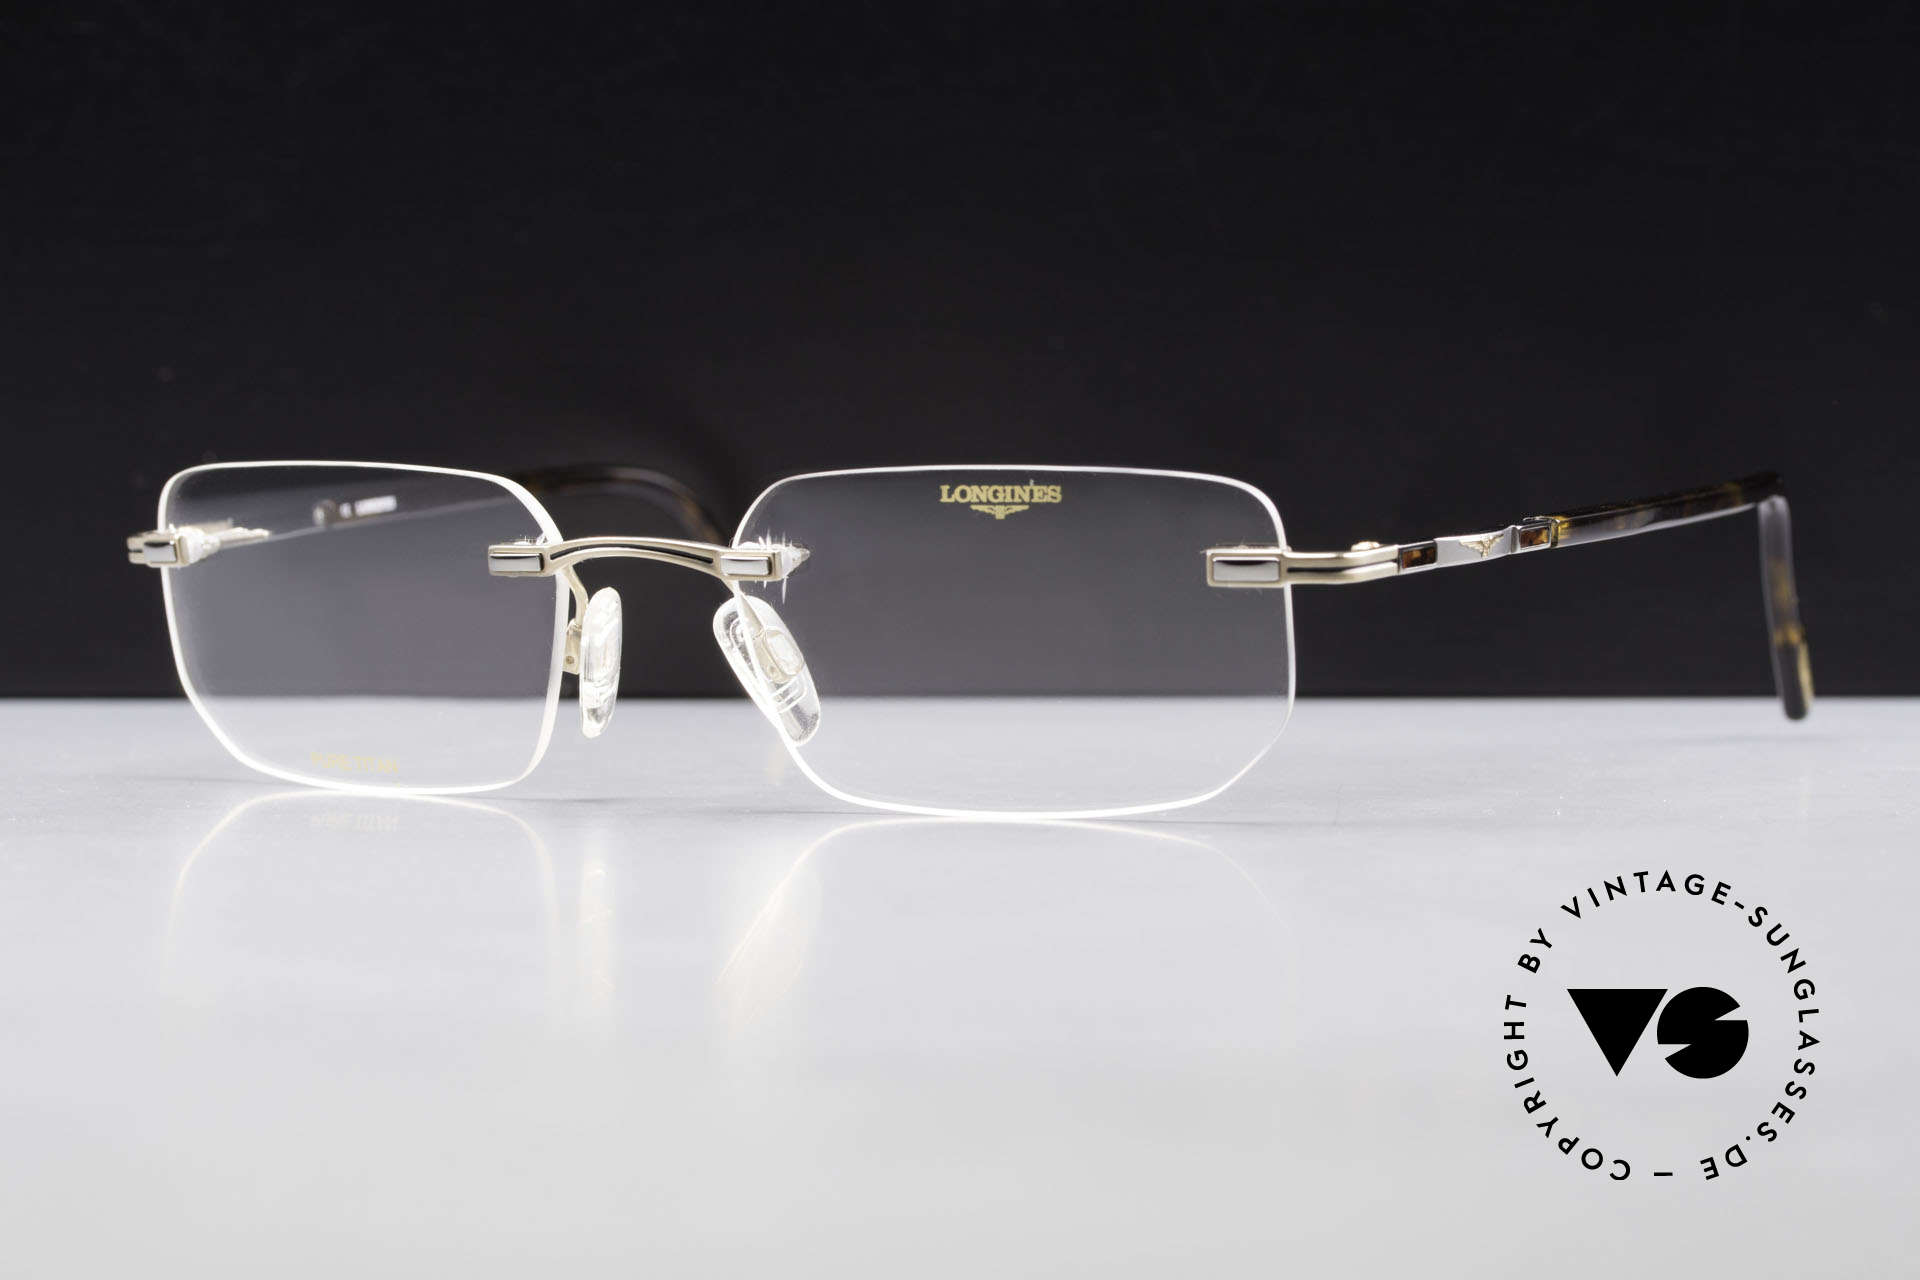 Longines 4238 90's Rimless Glasses Pure Titan, Longines logo, the winged hourglass, on the temples, Made for Men